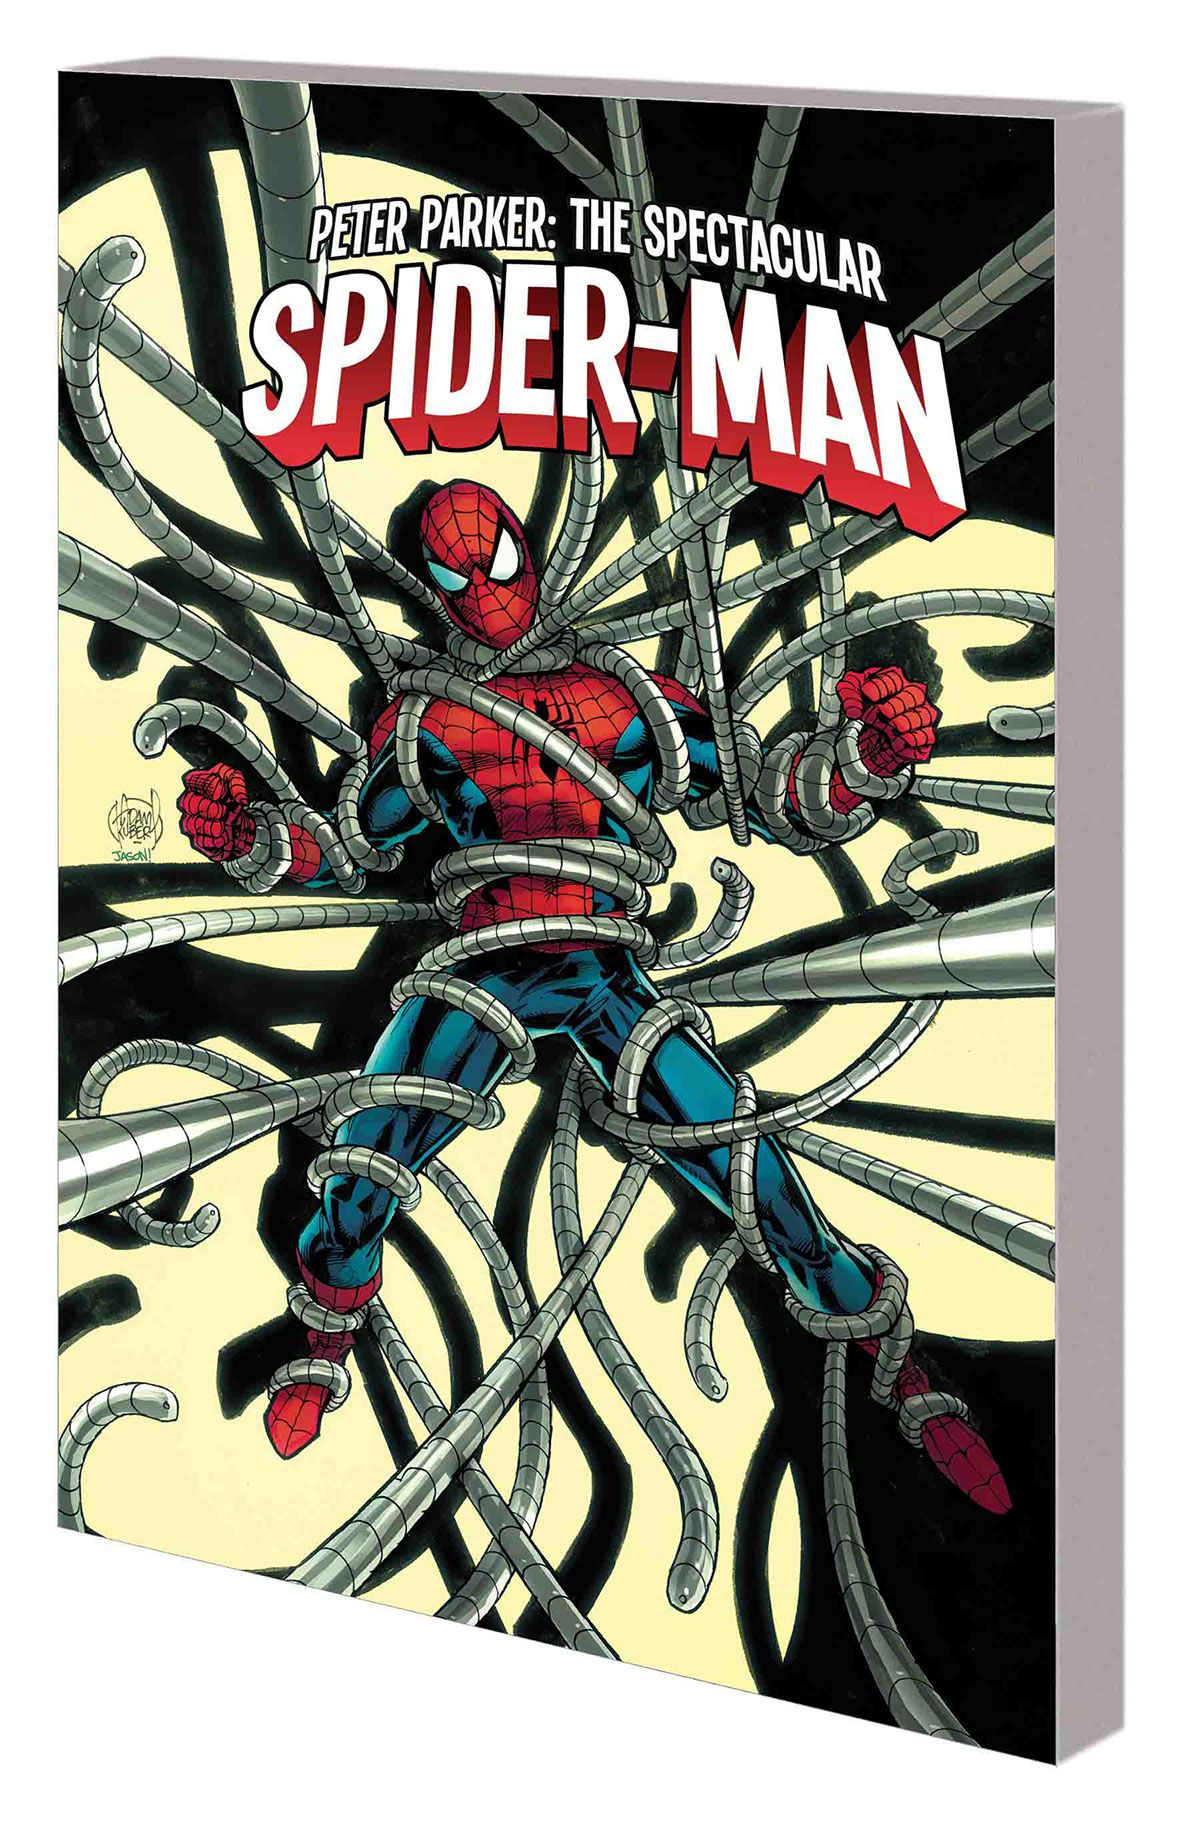 PETER PARKER: THE SPECTACULAR SPIDER-MAN VOL. 4 TPB